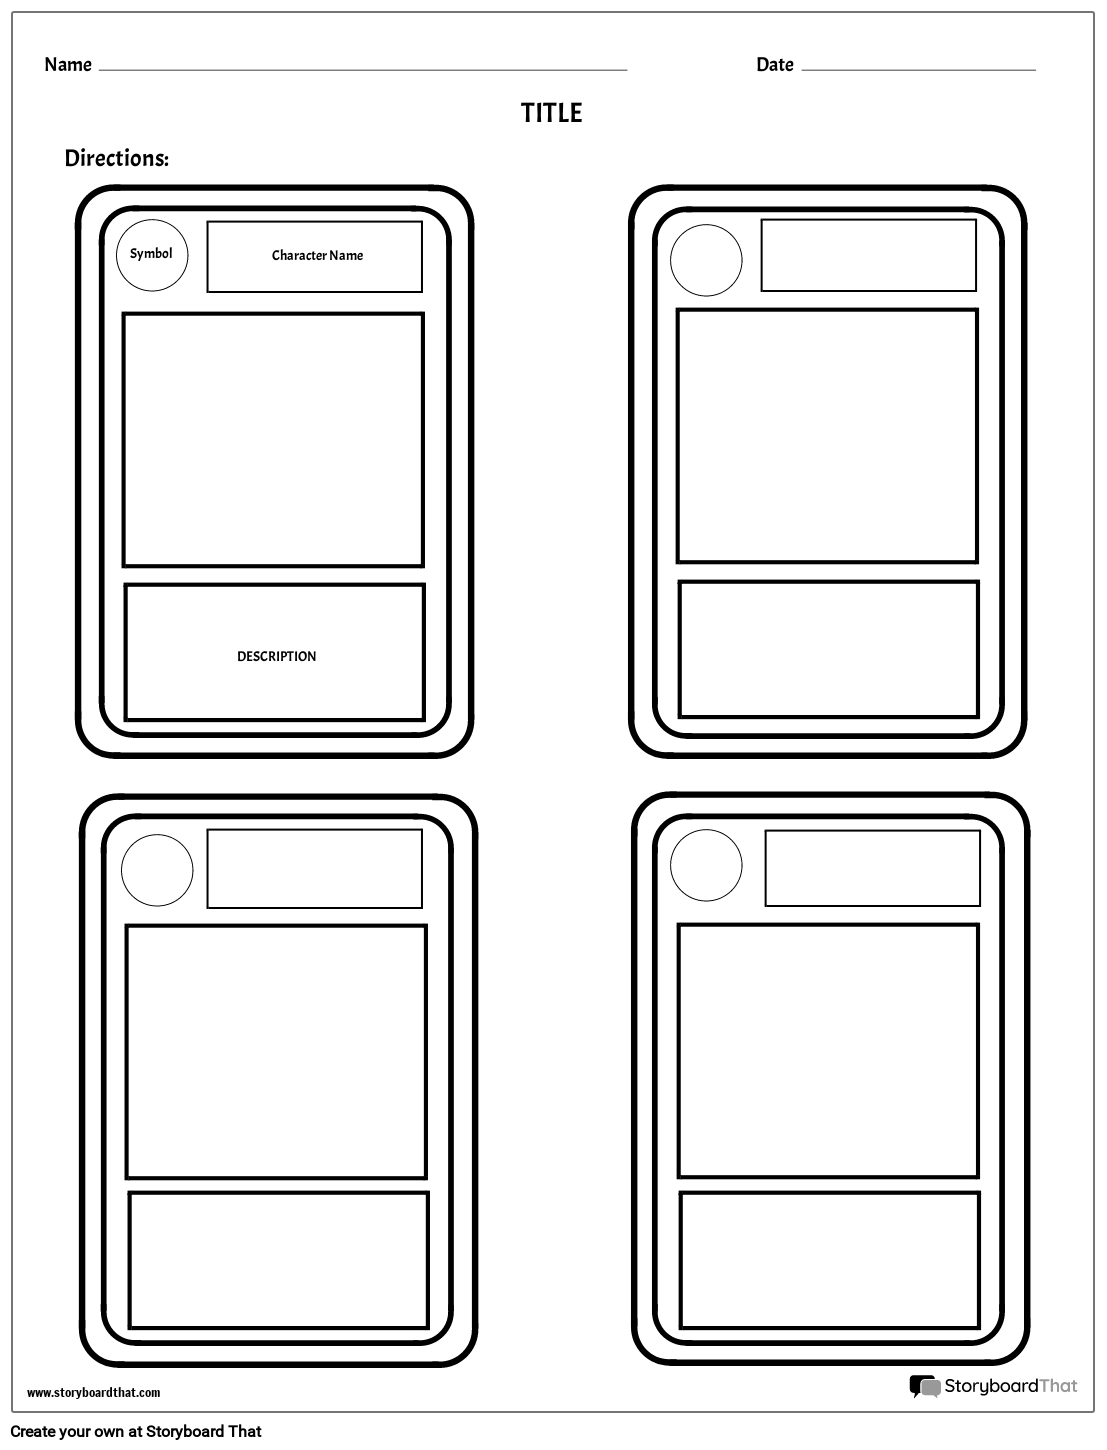 character trading cards storyboard by worksheet templates